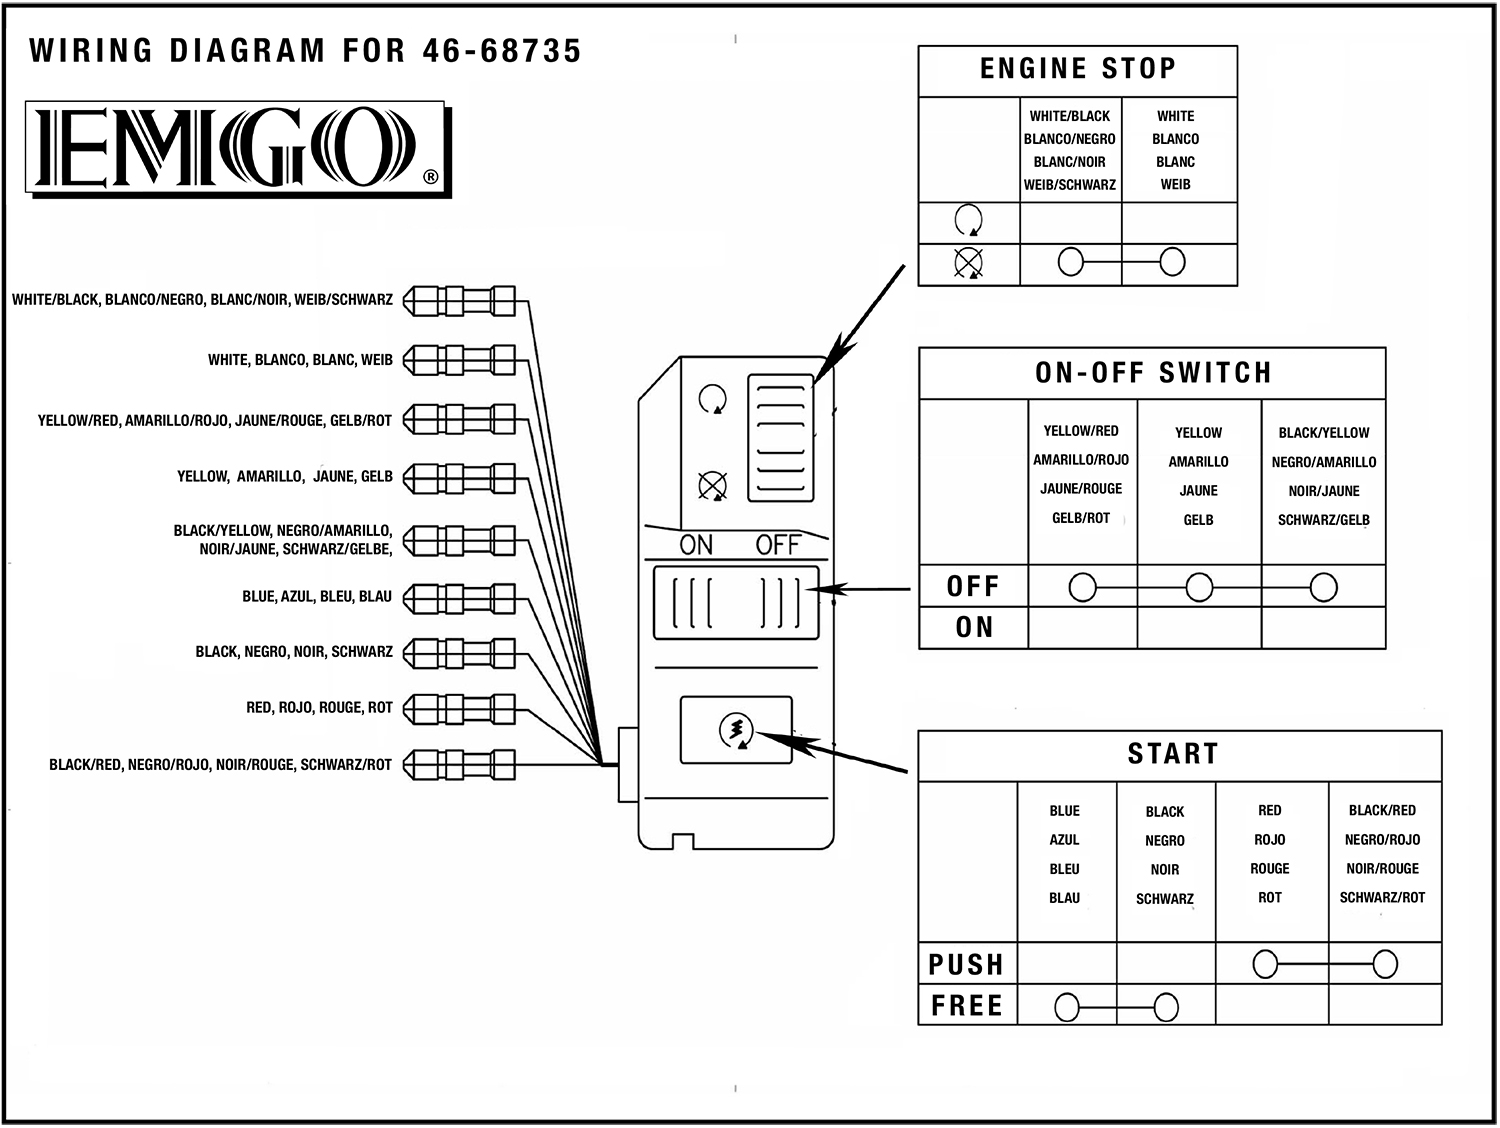 [ZHKZ_3066]  Honda Ca77 Wiring Diagram - 1998 Ford Windstar Wiring Schematic for Wiring  Diagram Schematics | Honda Ca77 Wiring Diagram |  | Wiring Diagram Schematics